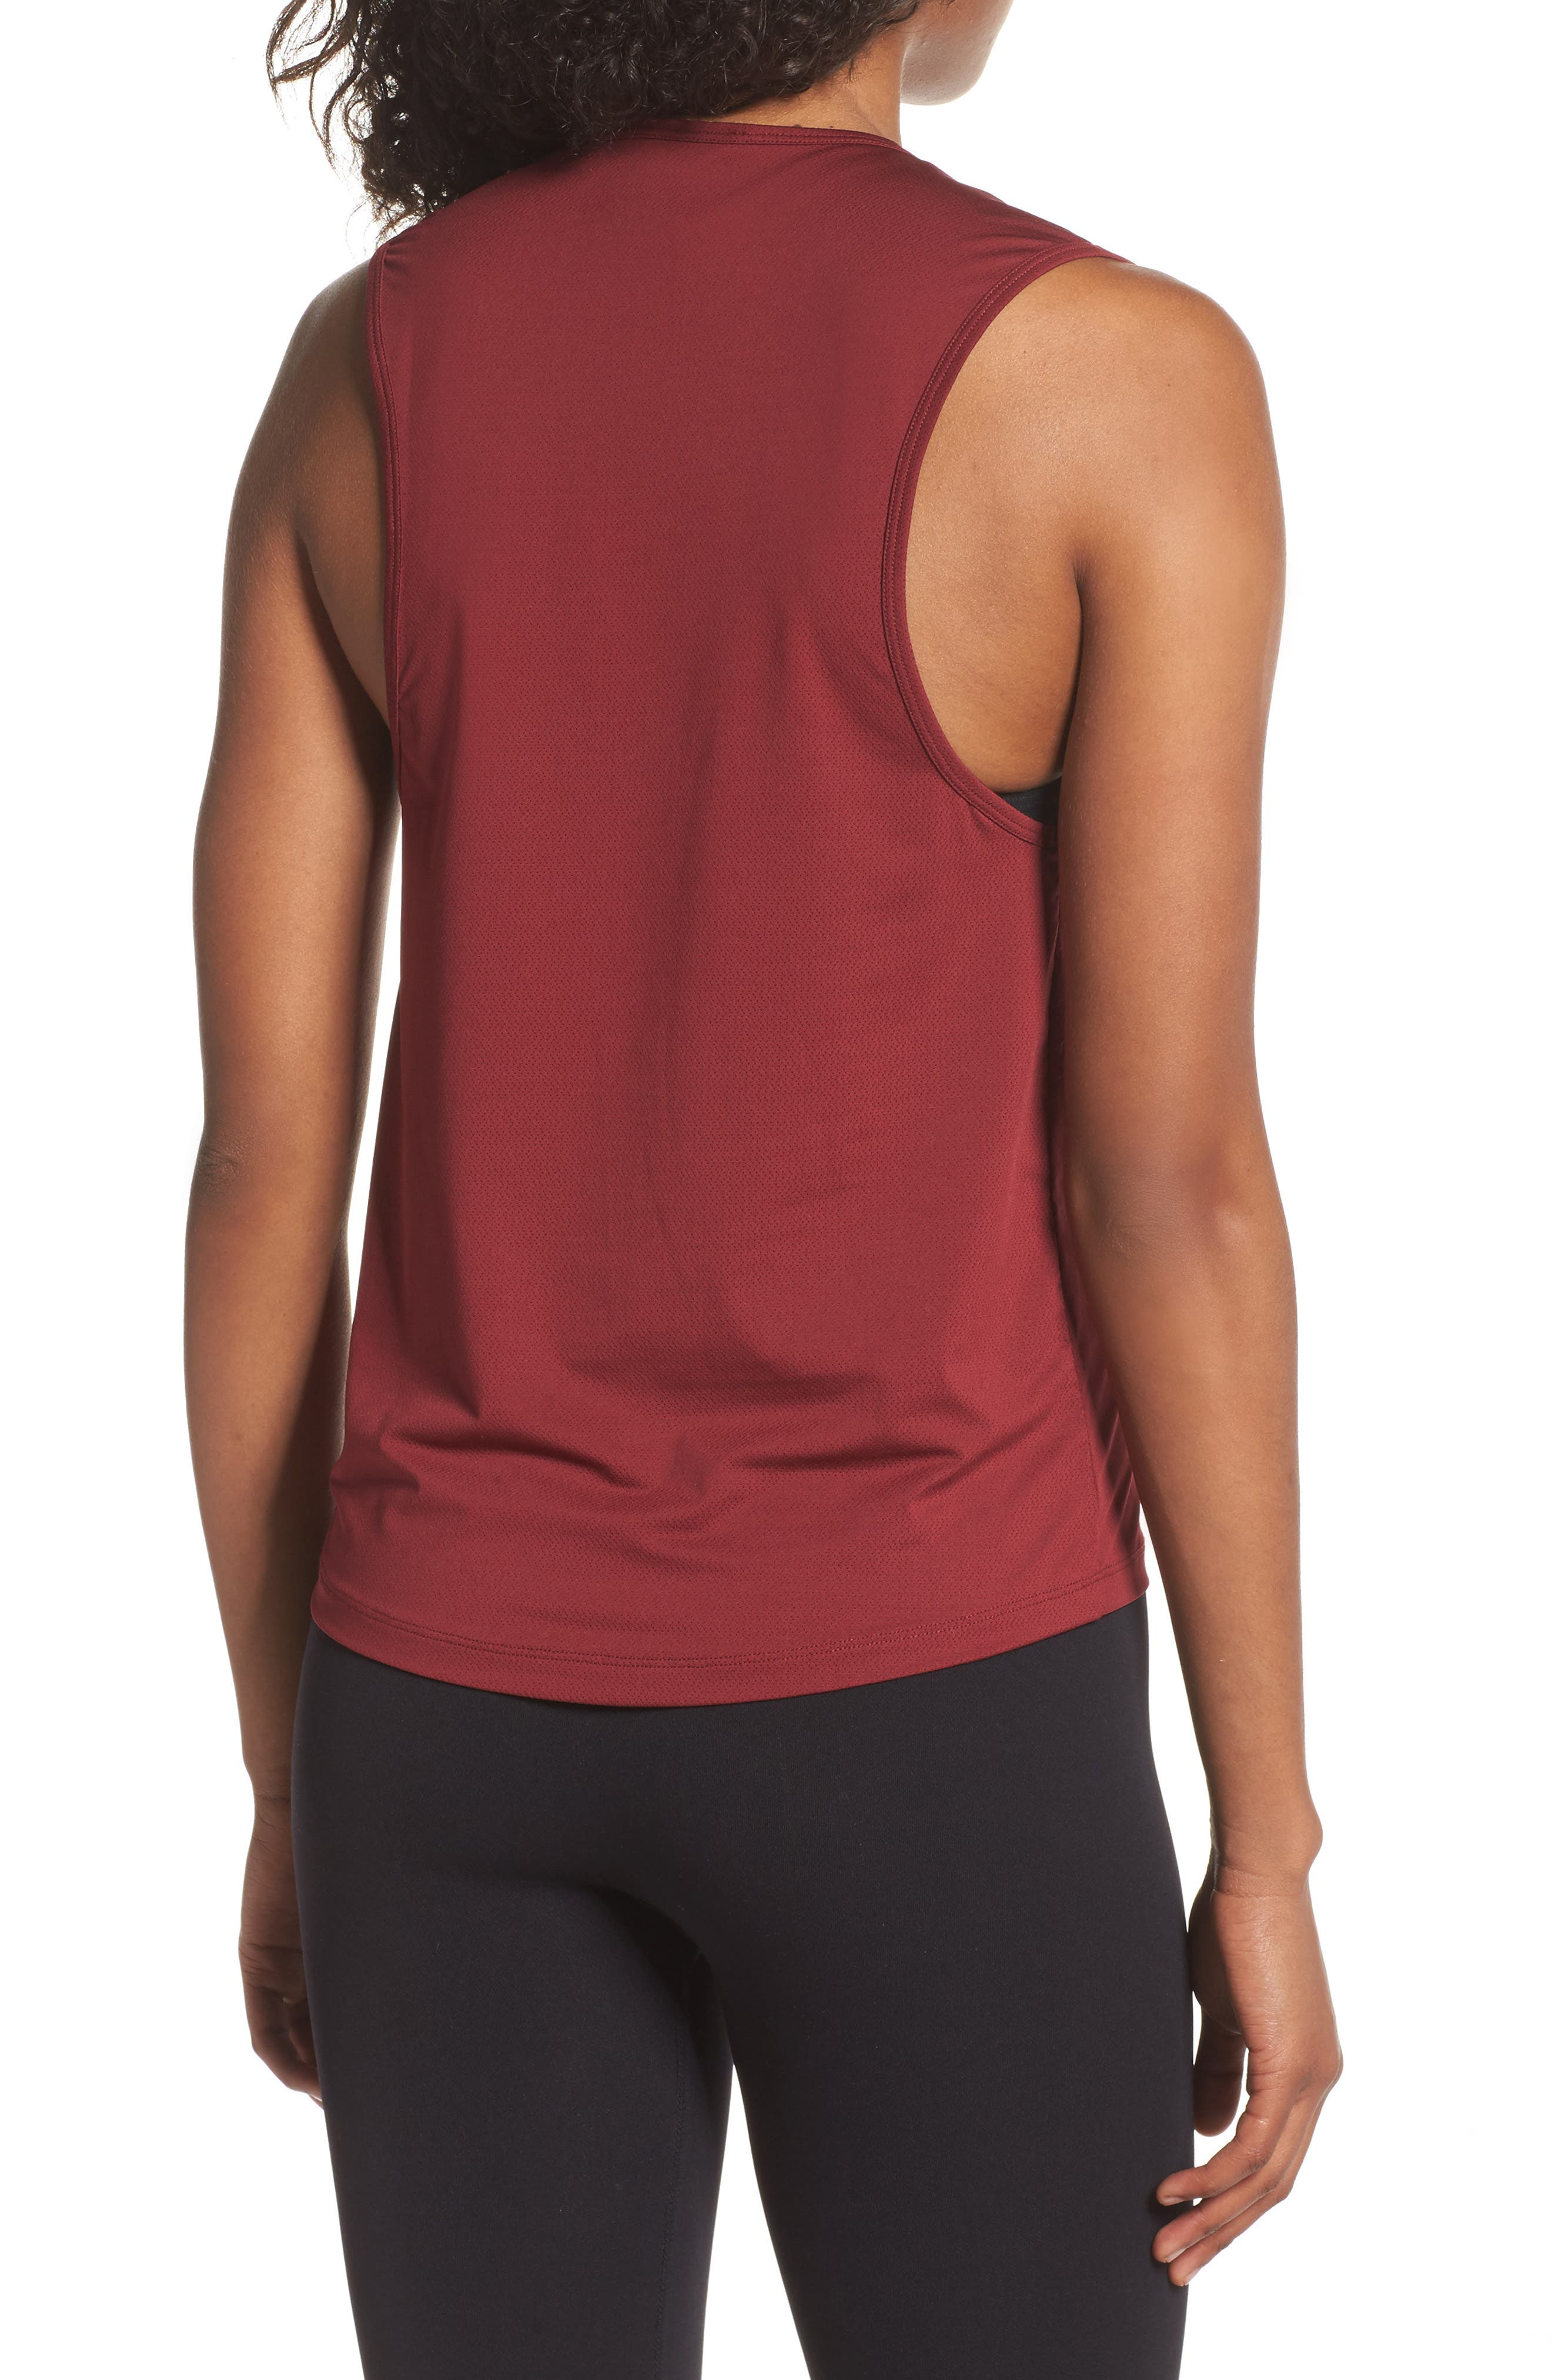 Alternate Image 2  - BoomBoom Athletica Muscle Tank